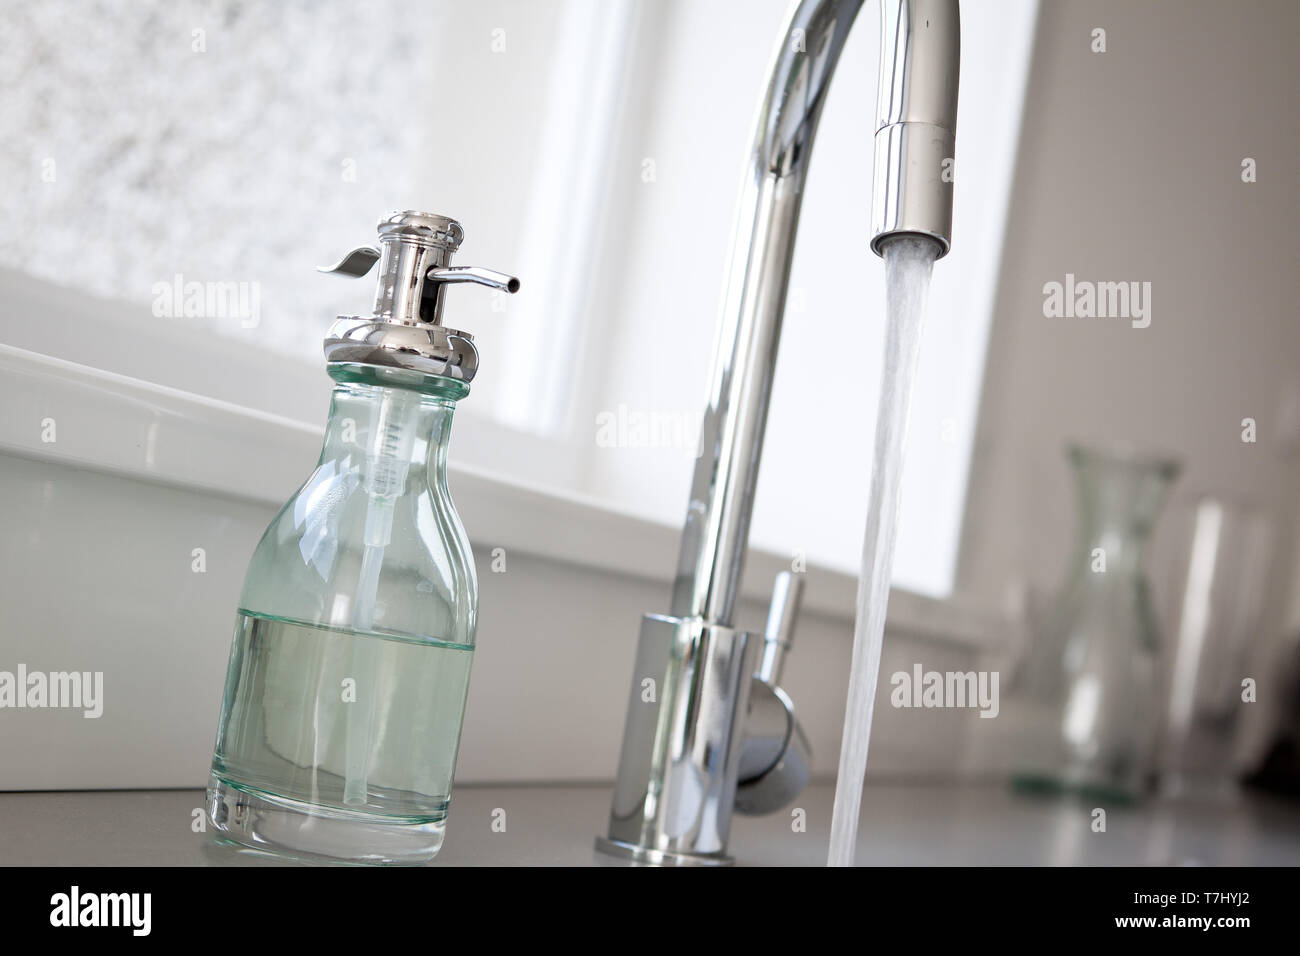 A tap running in the home sink. Also pictured is a bottle of hand wash. - Stock Image